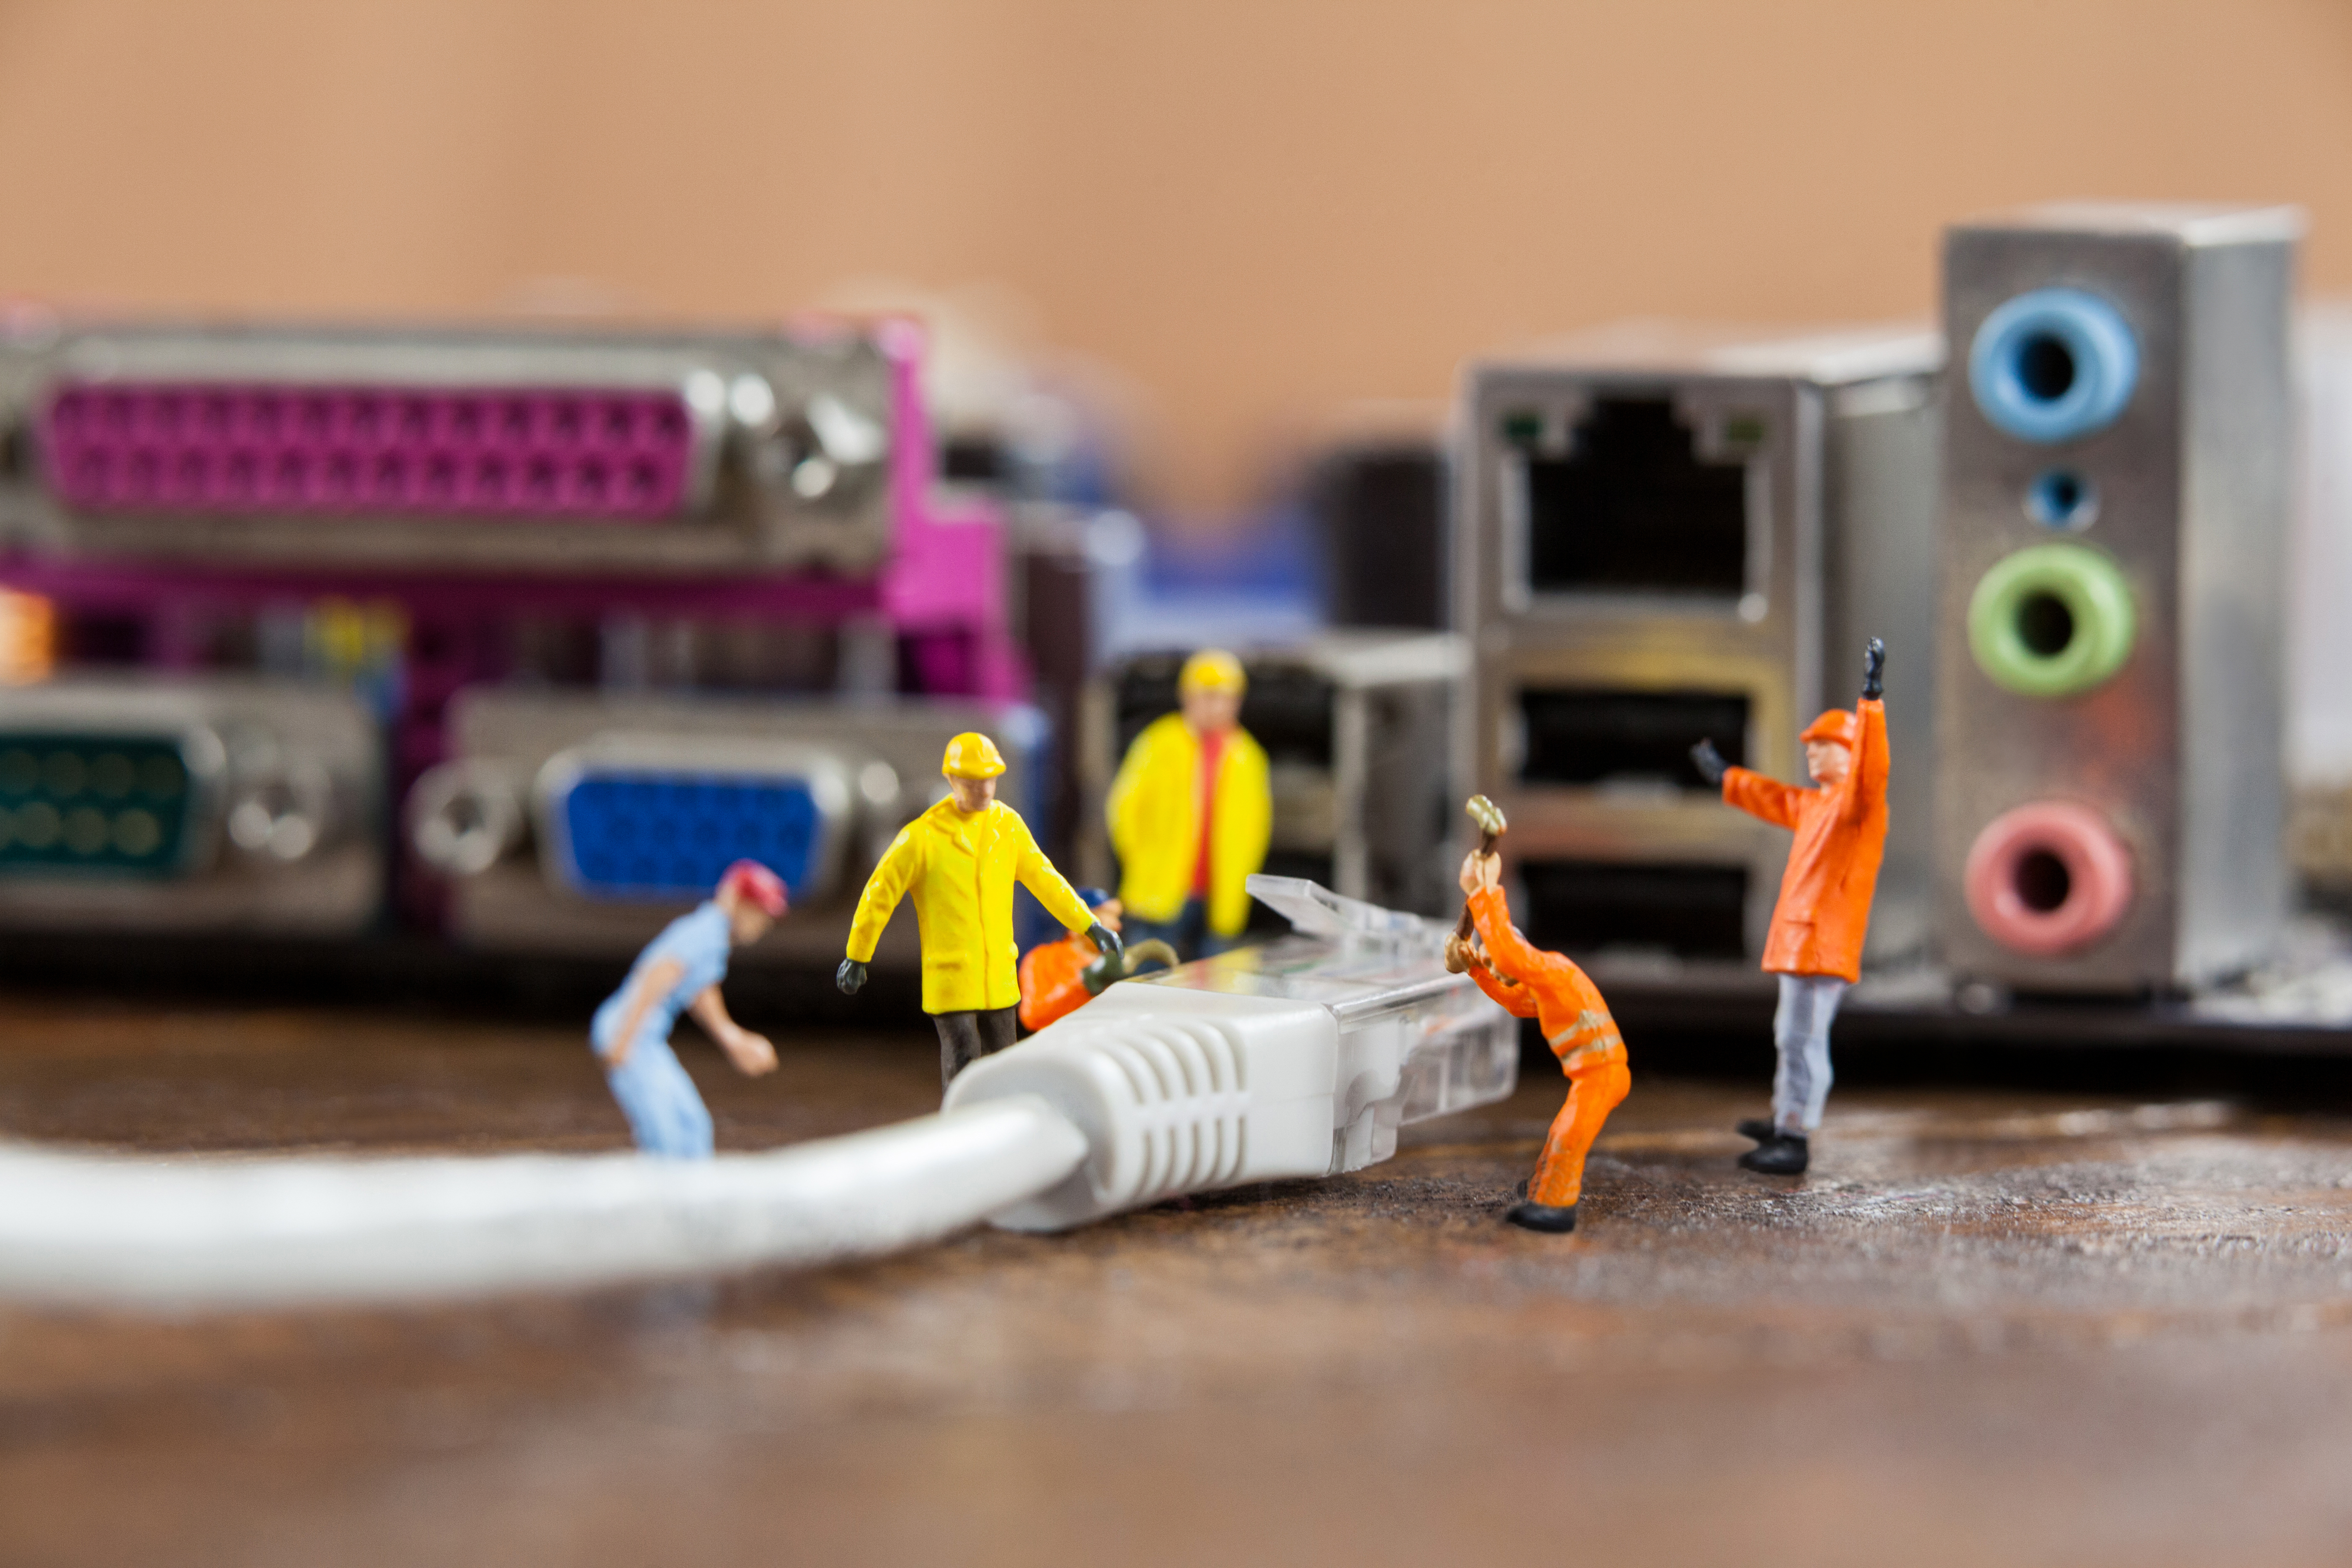 miniature-engineer-and-worker-plug-in-lan-cable-to-computer